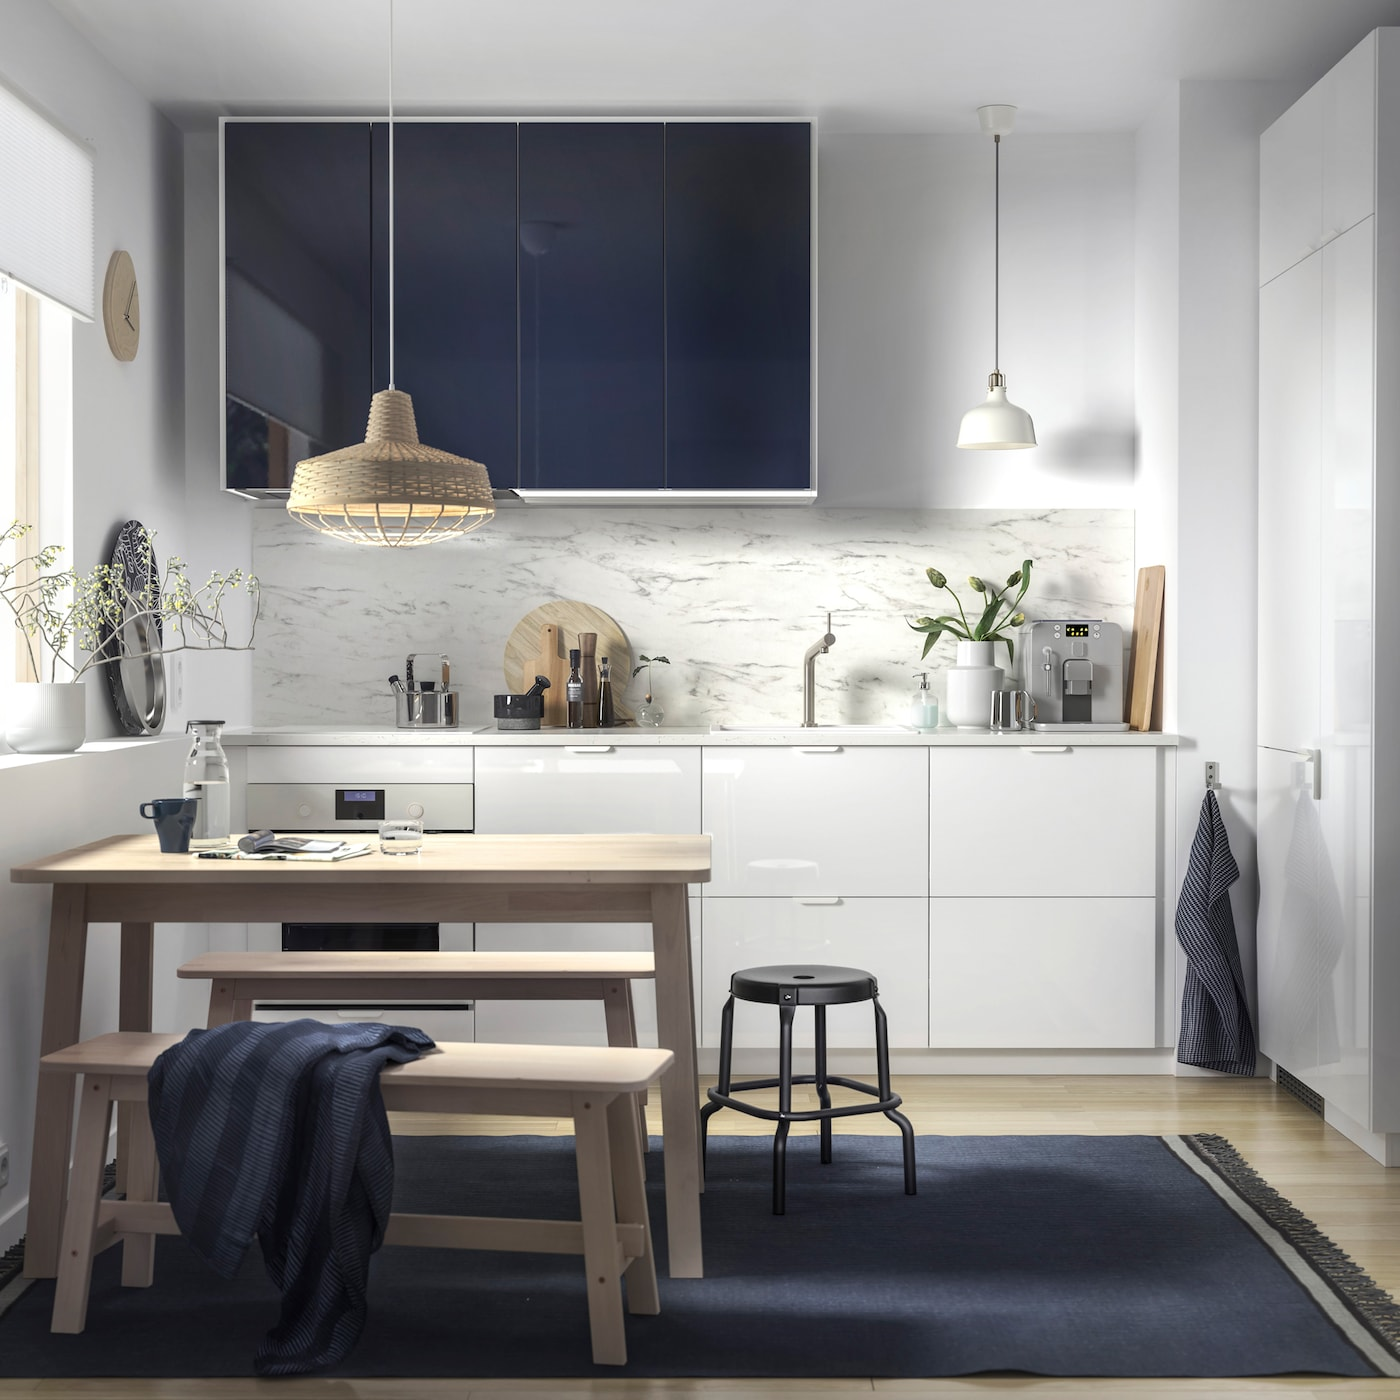 The Sleek And Sophisticated Kitchenette